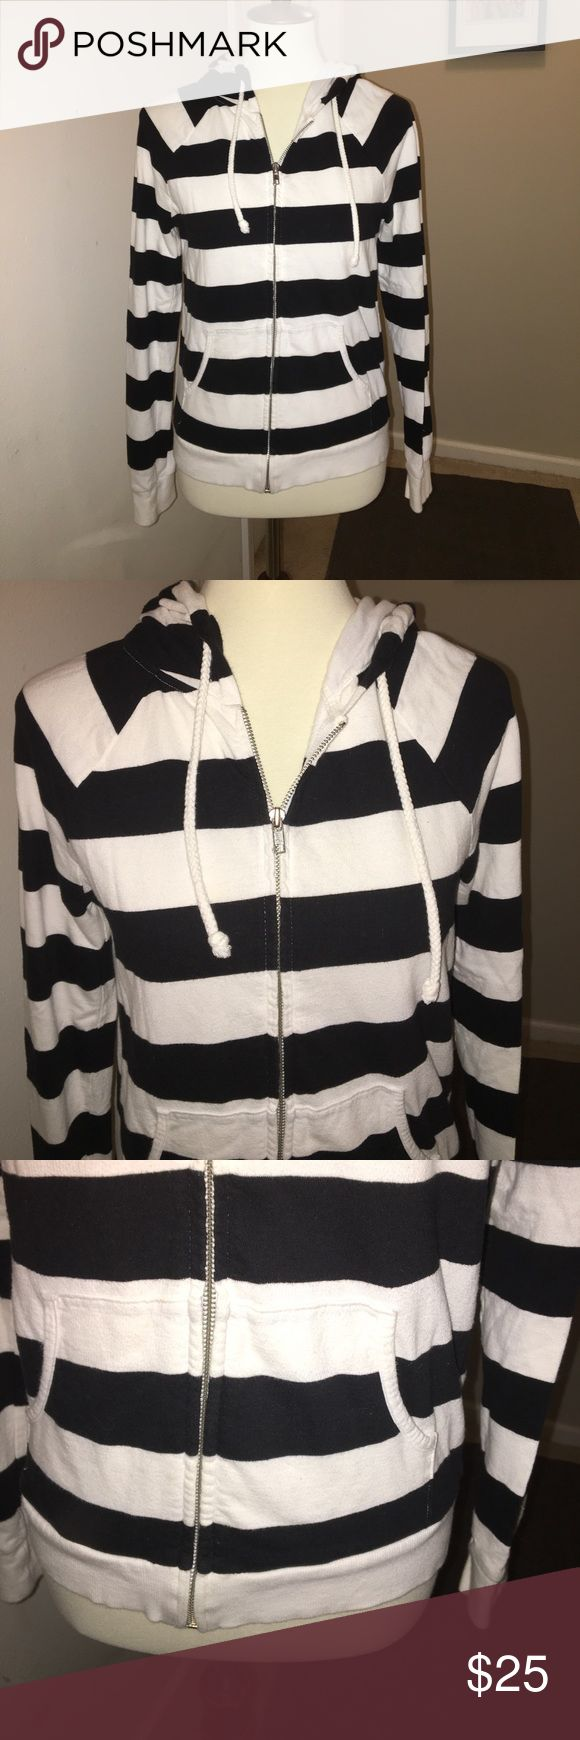 Forever 21 • Striped zip up hoodie w front pockets Cute zip up hoodie with lined good and unlined body. No major issues. Light to no pilling, back of hood is not as bright white as original but the rest is in great condition when it comes to fabric and color. Metal zipper, and hood has pulls on each side. Forever 21 Tops Sweatshirts & Hoodies